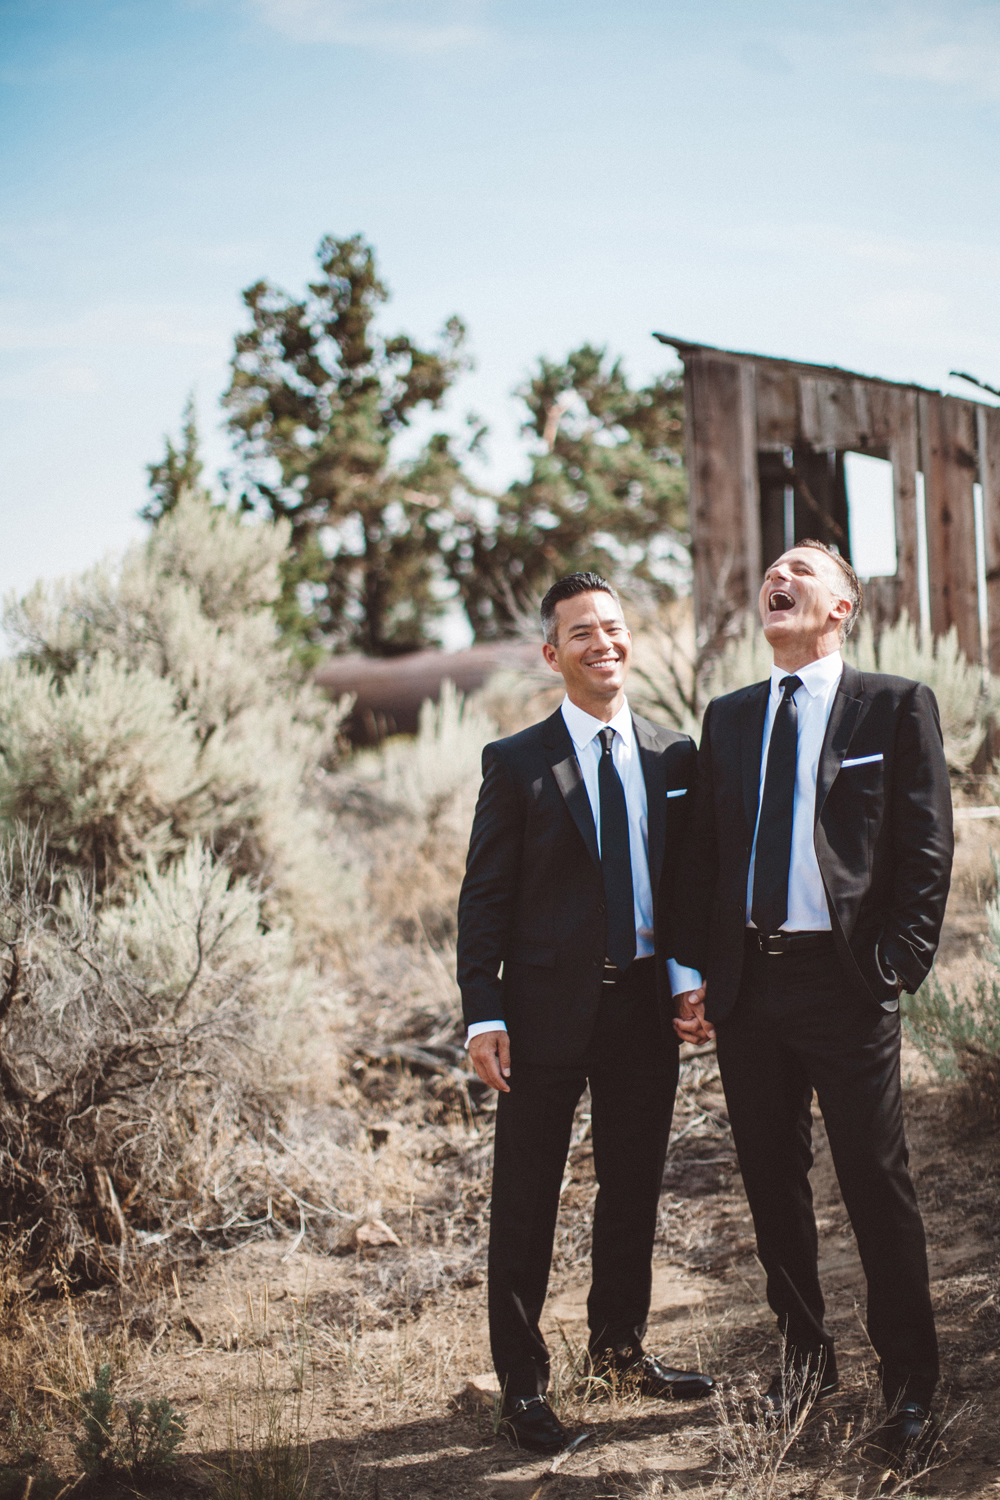 Bridalbliss.com | Bend Wedding | Central Oregon Event Planning and Design | Sergio Mottola Photography | Chad Dowling Production